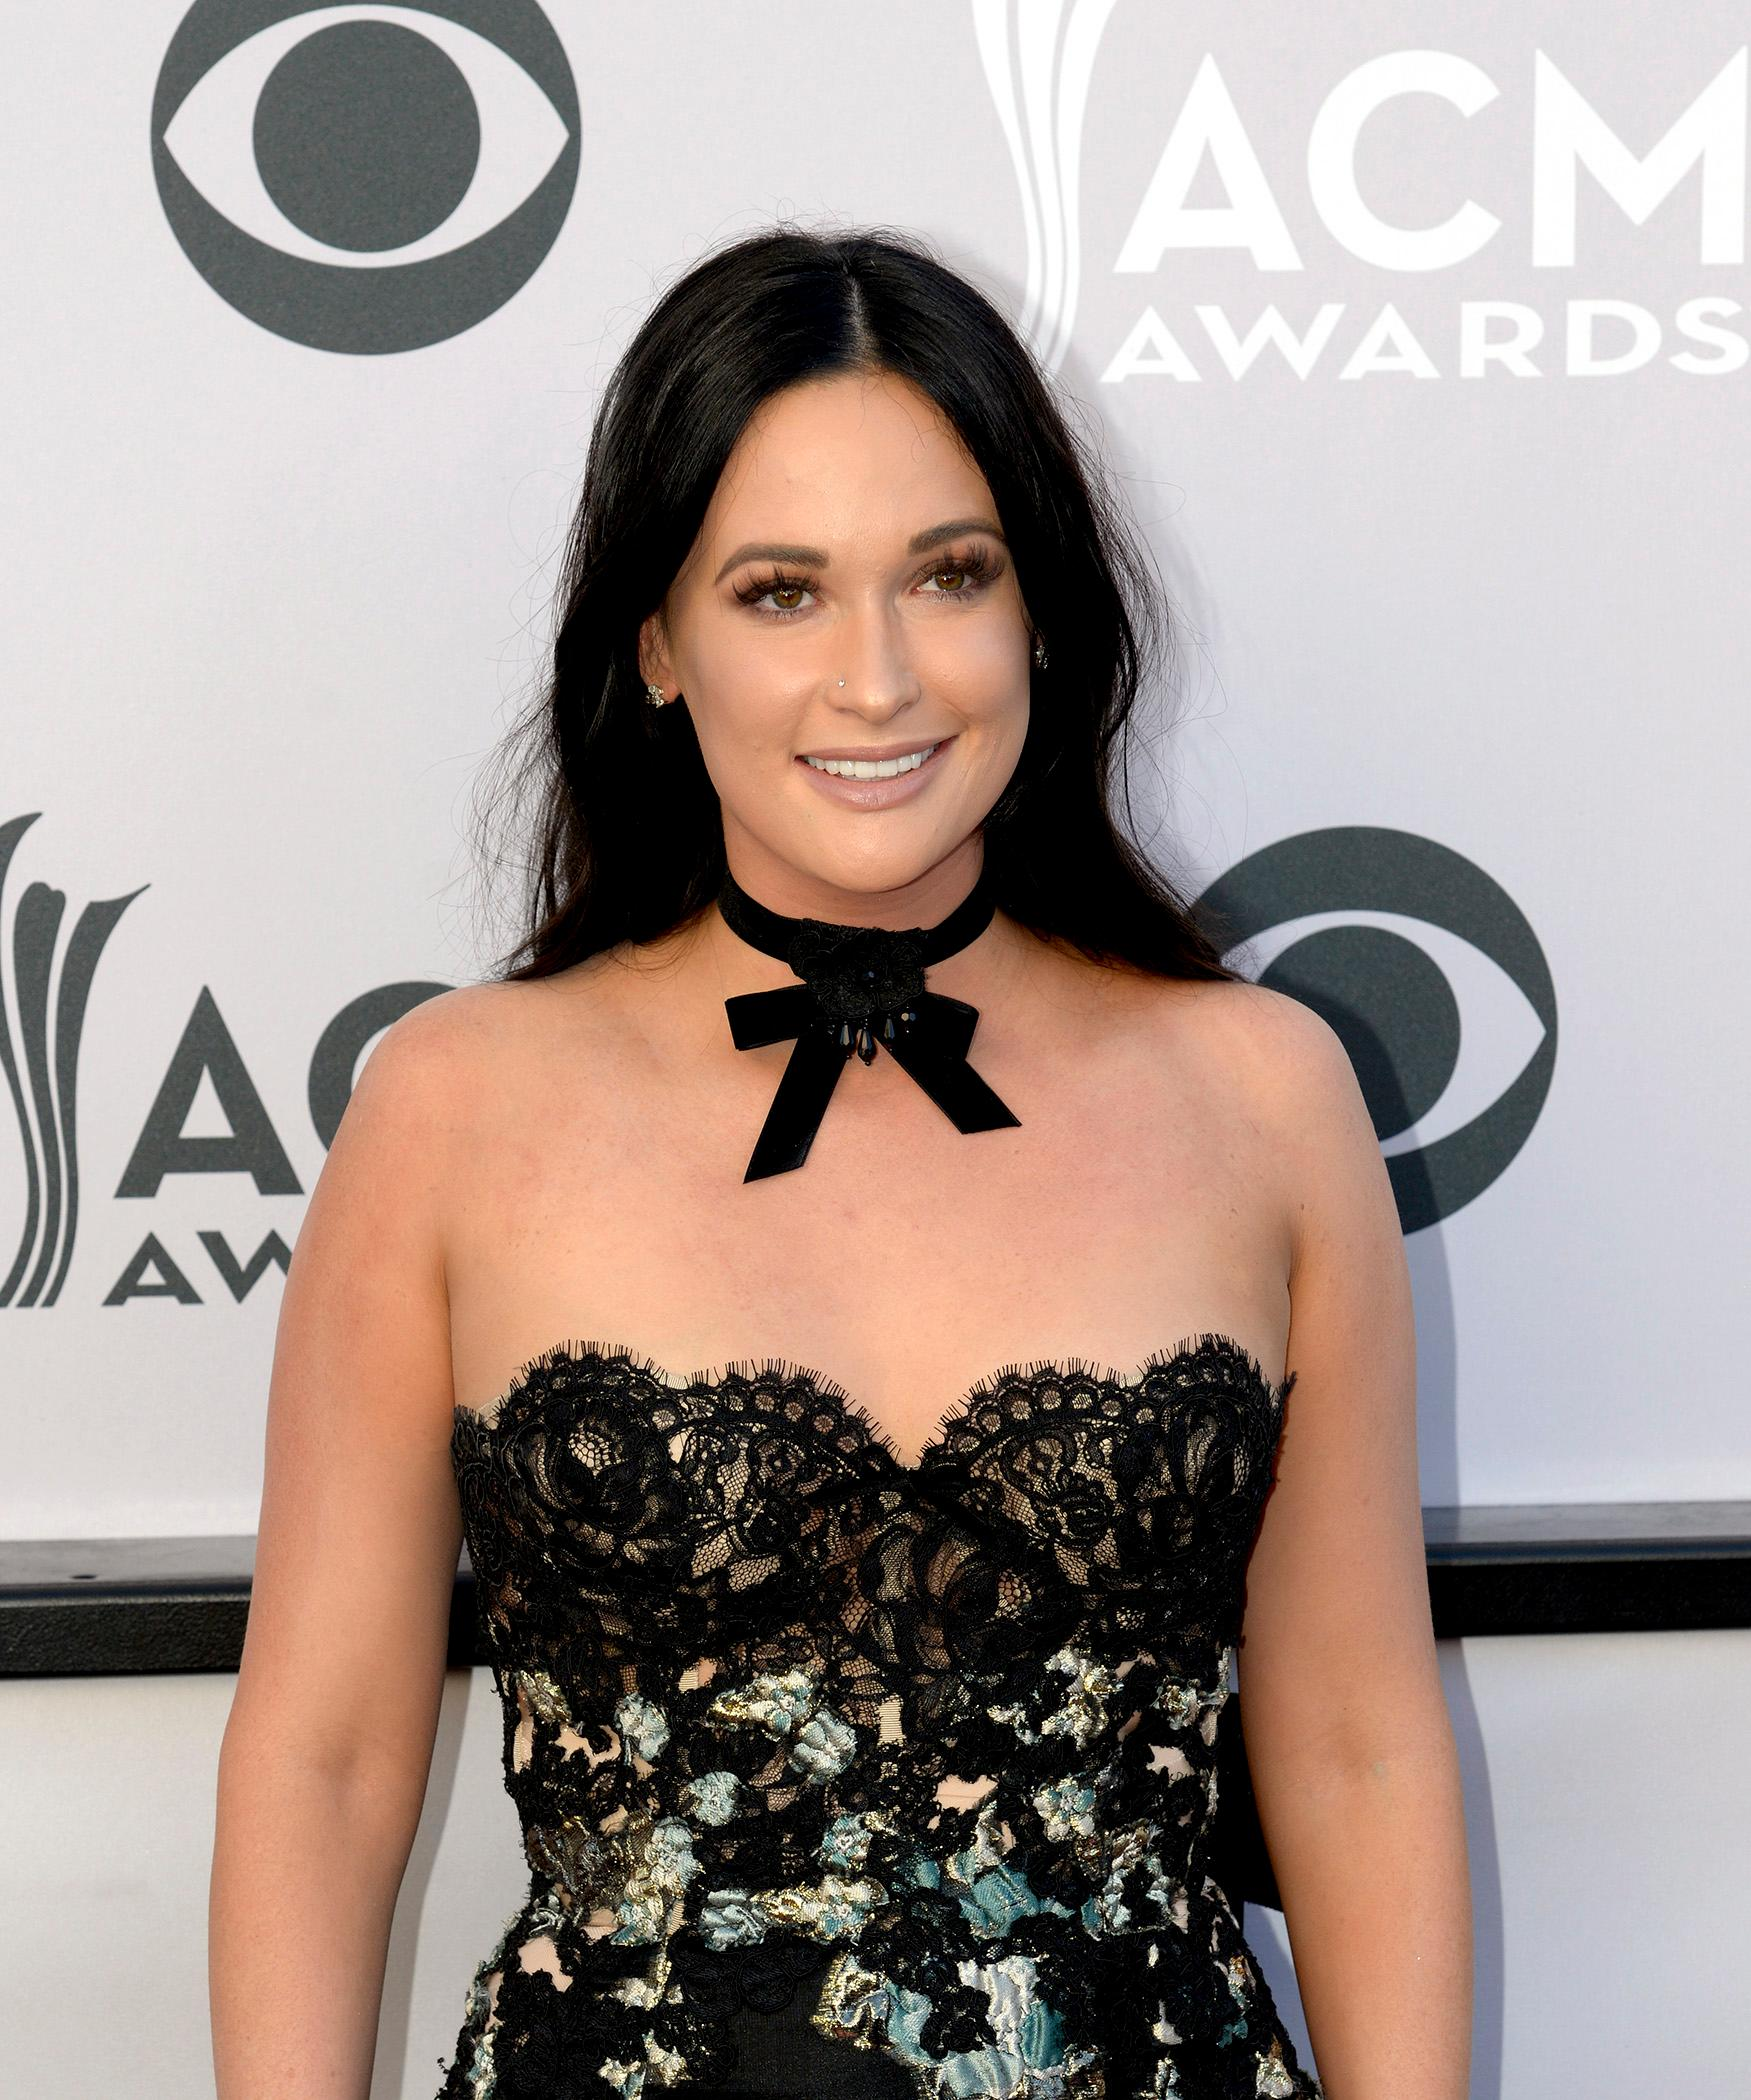 Kacey Musgraves, nominee for Female Vocalist of the Year walks the Academy of Country Music Awards red carpet at T-Mobile Arena. Sunday, April 2, 2017. (Glenn Pinkerton/ Las Vegas News Bureau)